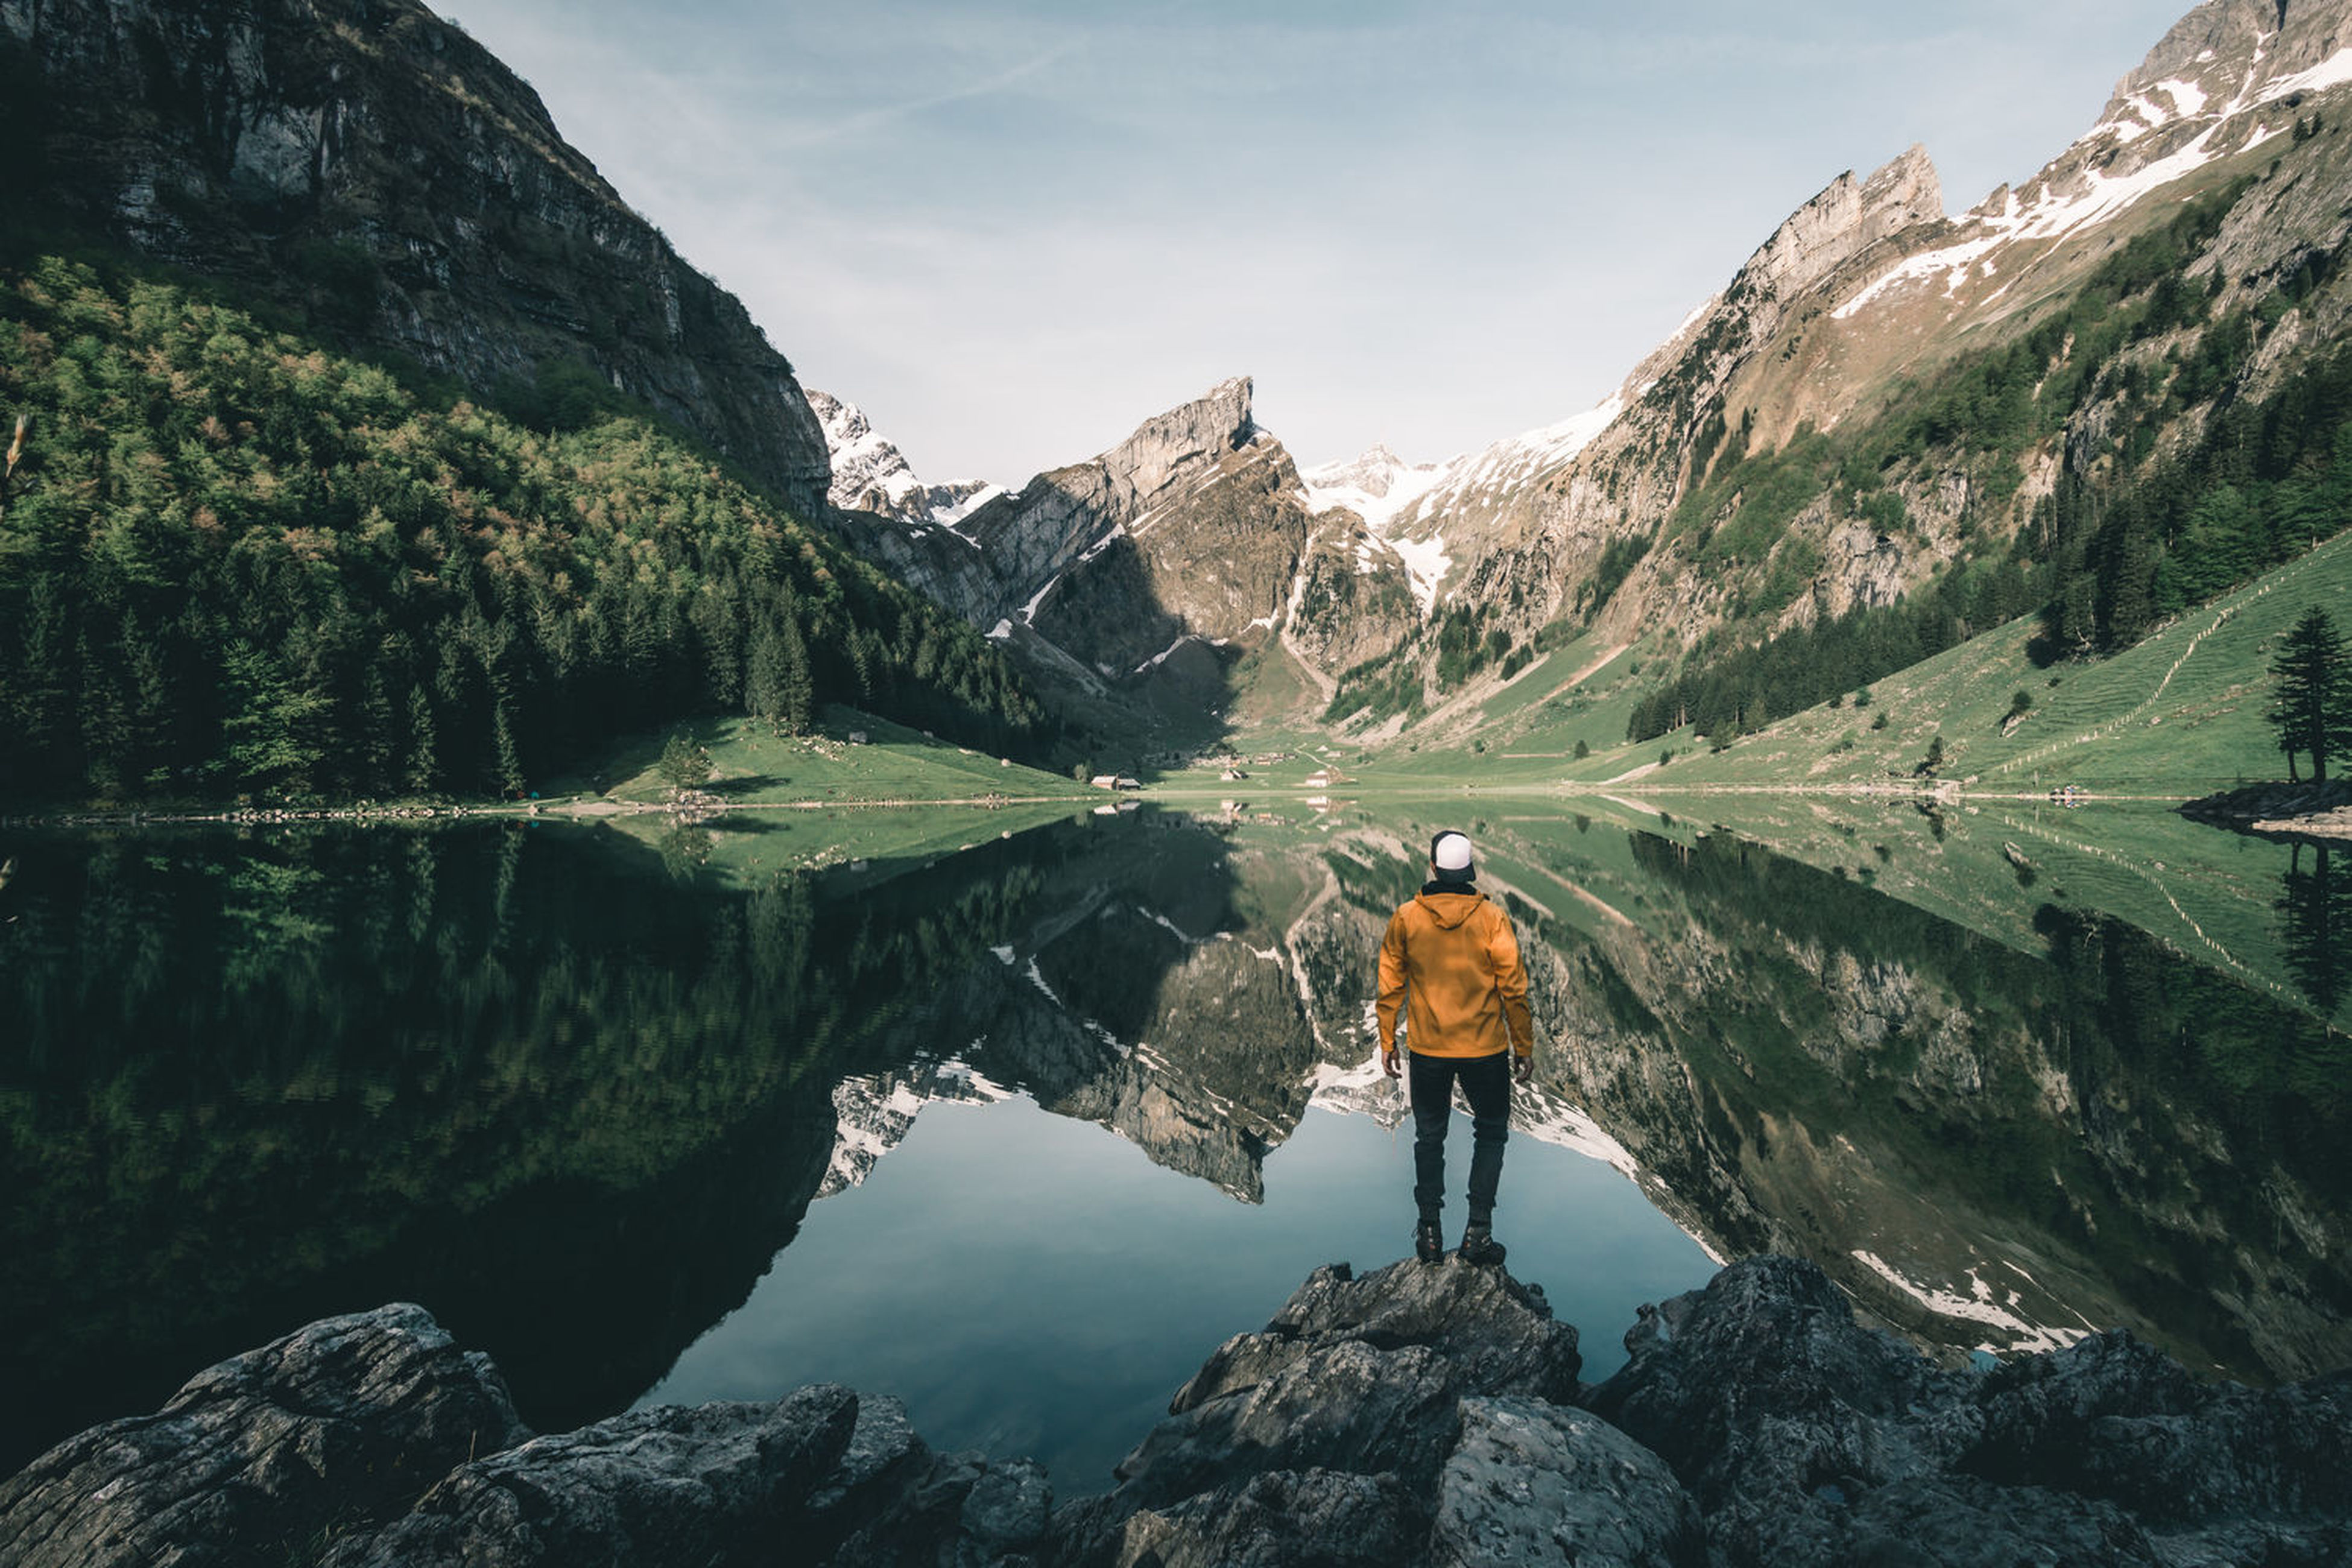 mountain, real people, nature, leisure activity, one person, standing, rear view, beauty in nature, adventure, scenics, lifestyles, backpack, outdoors, day, tranquil scene, sky, rock - object, mountain range, lake, hiking, reflection, full length, tranquility, men, water, vacations, tree, people